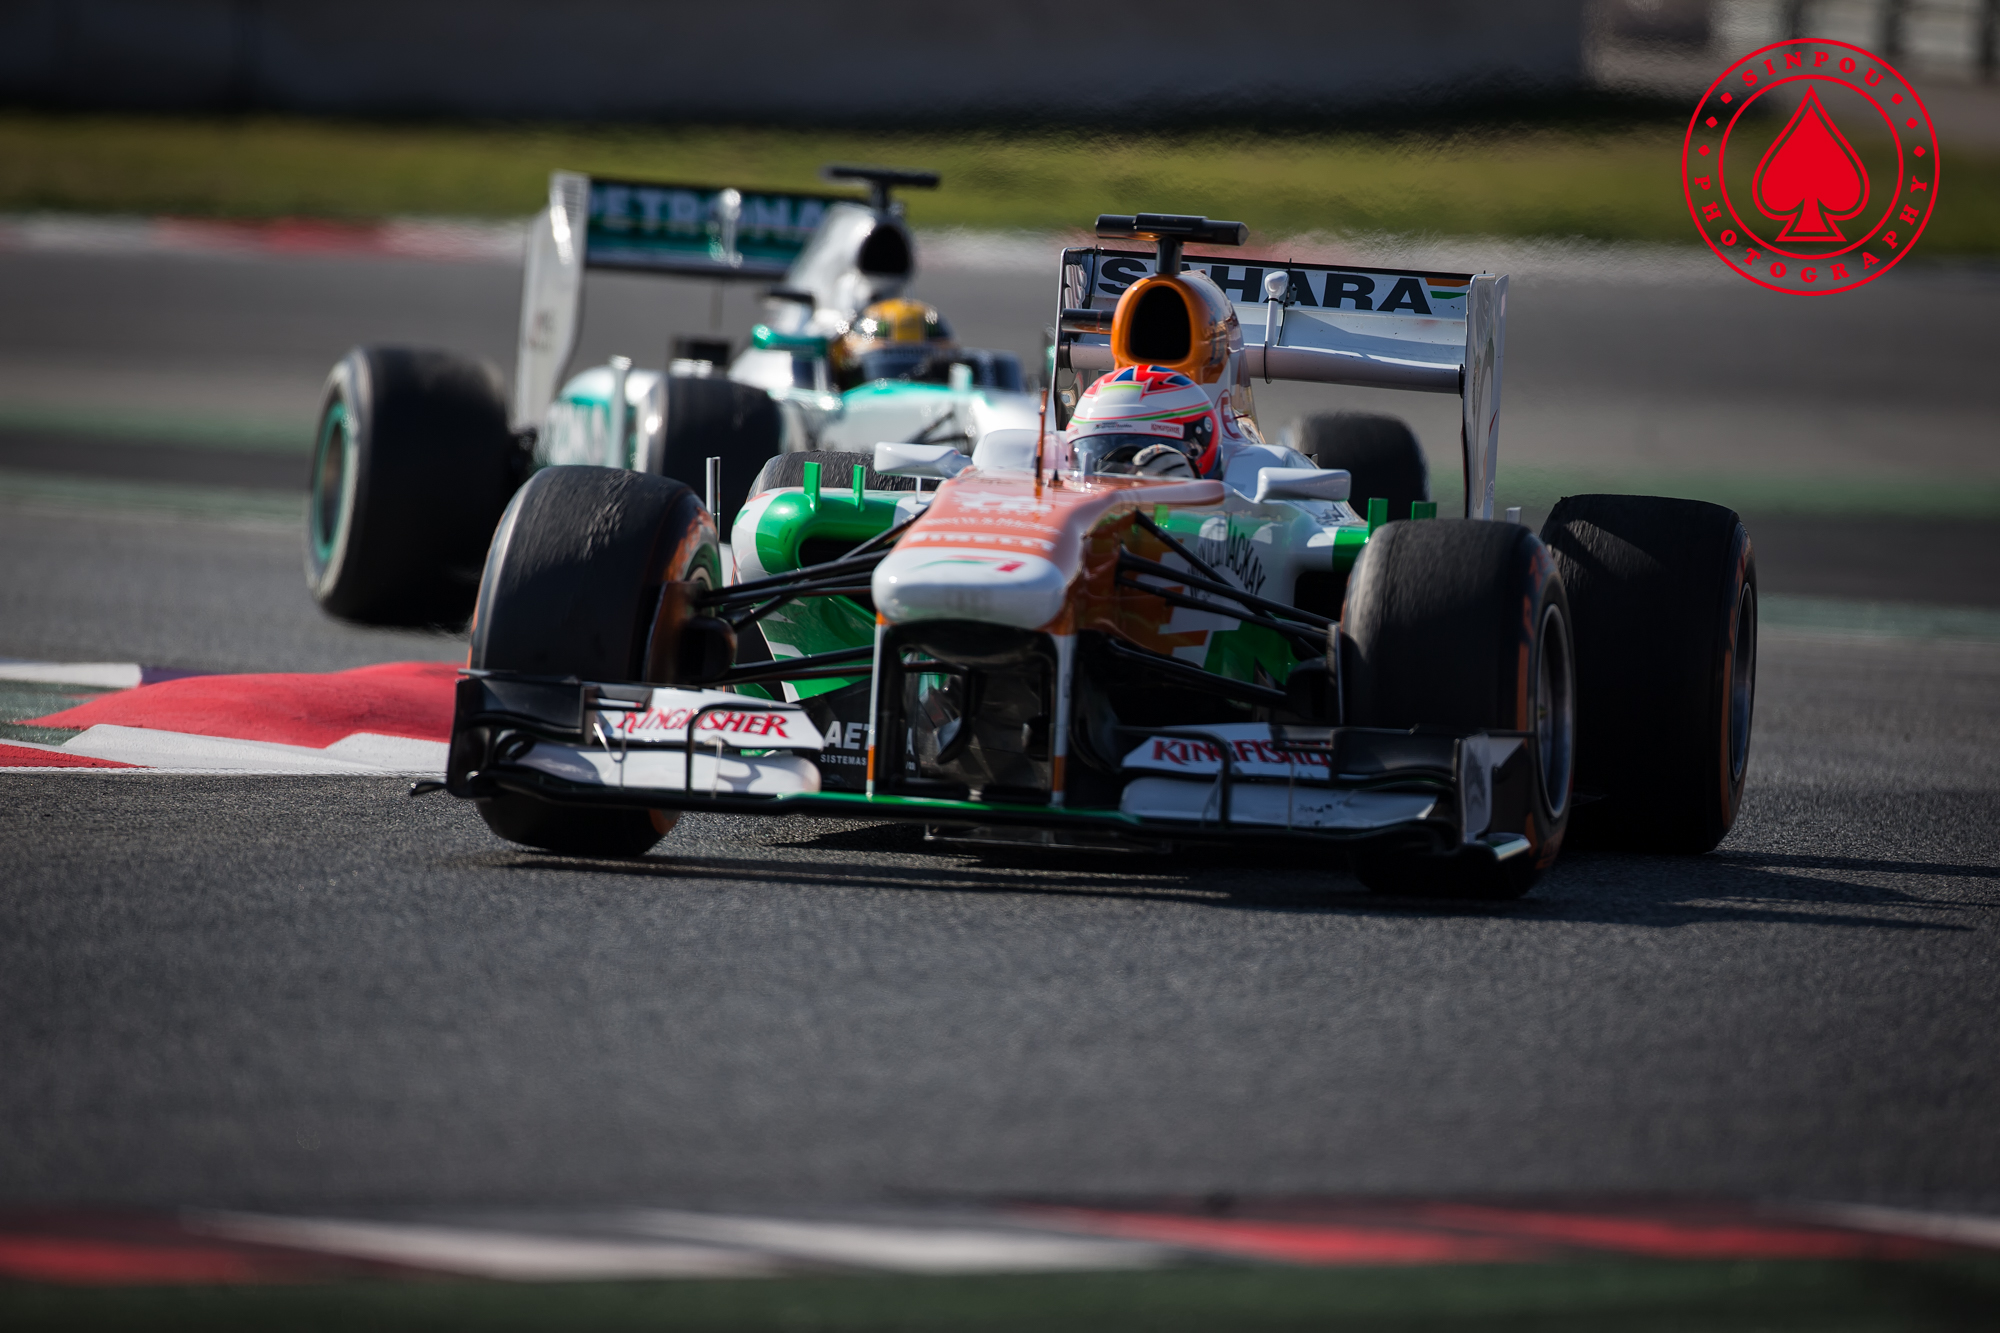 Paul Di Resta - Sahara Force India